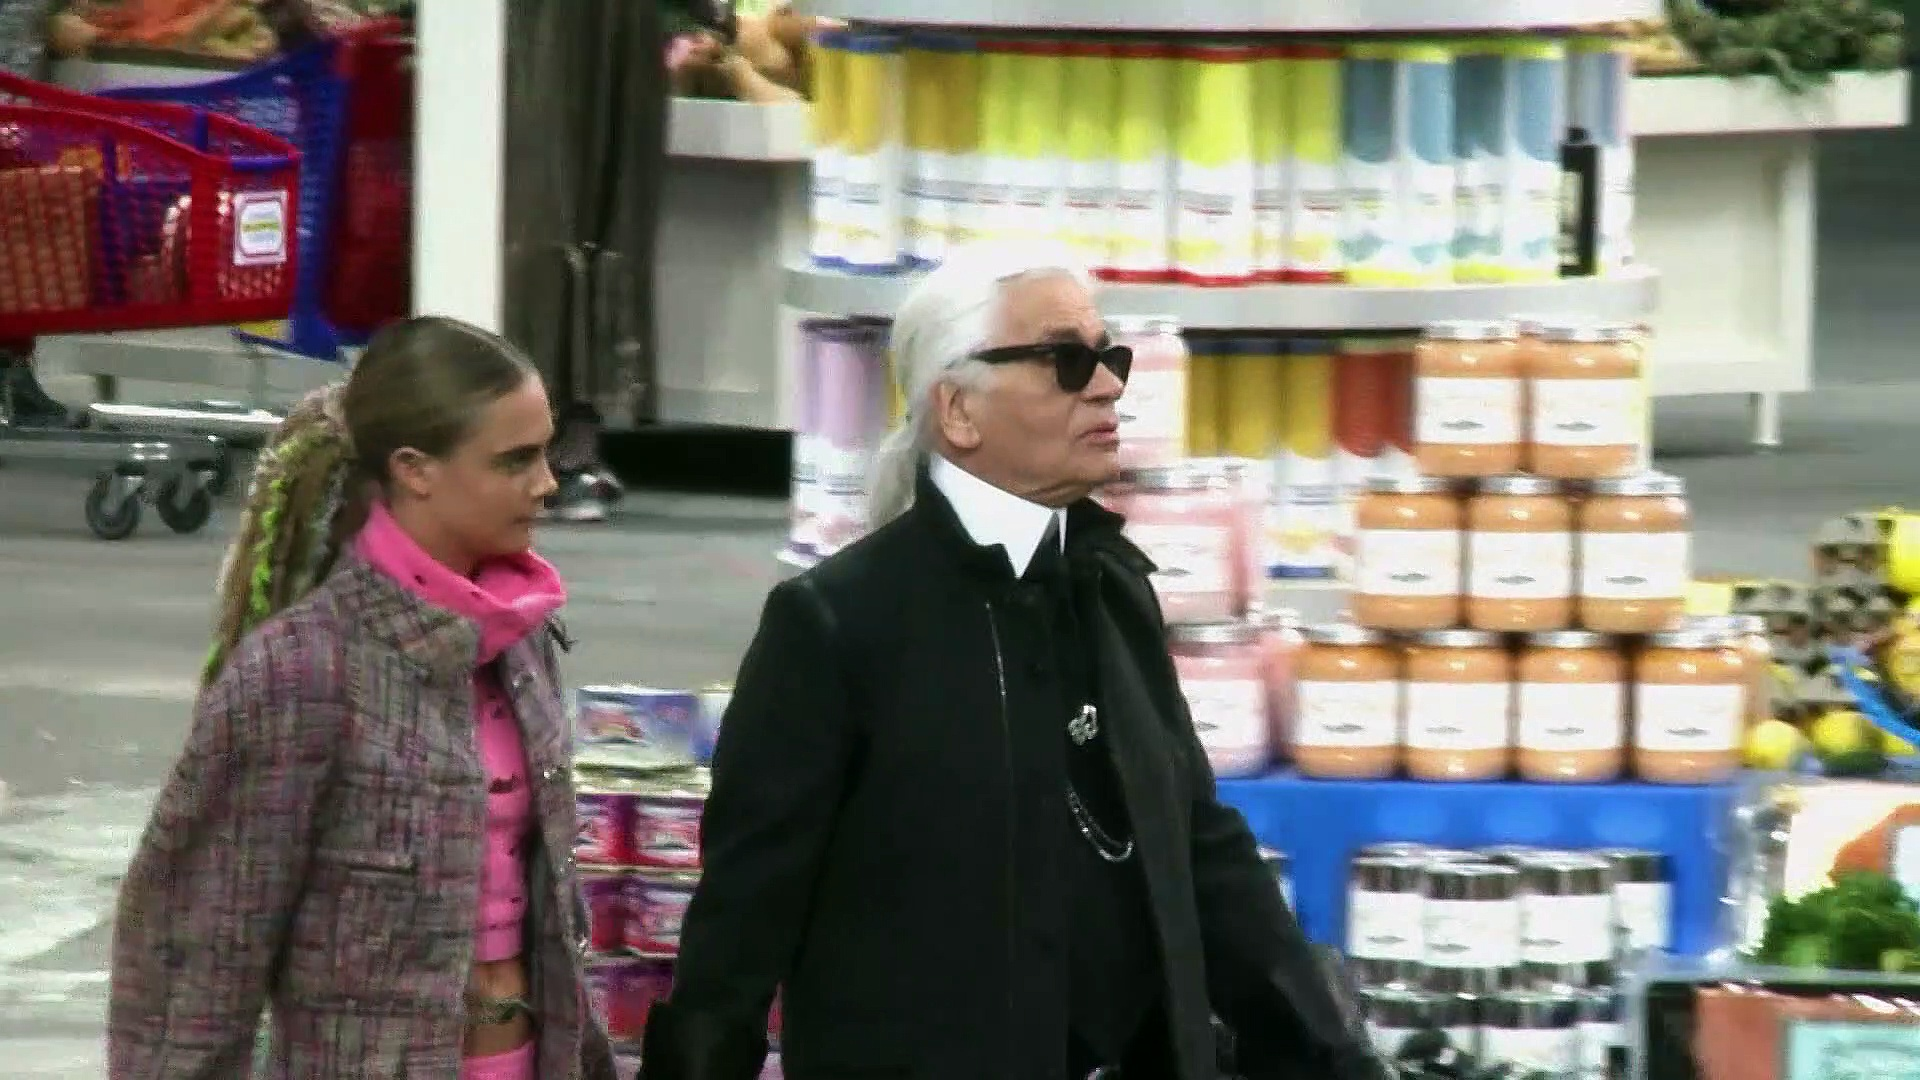 CELEBRITY OF THE WEEK - Karl Lagerfeld